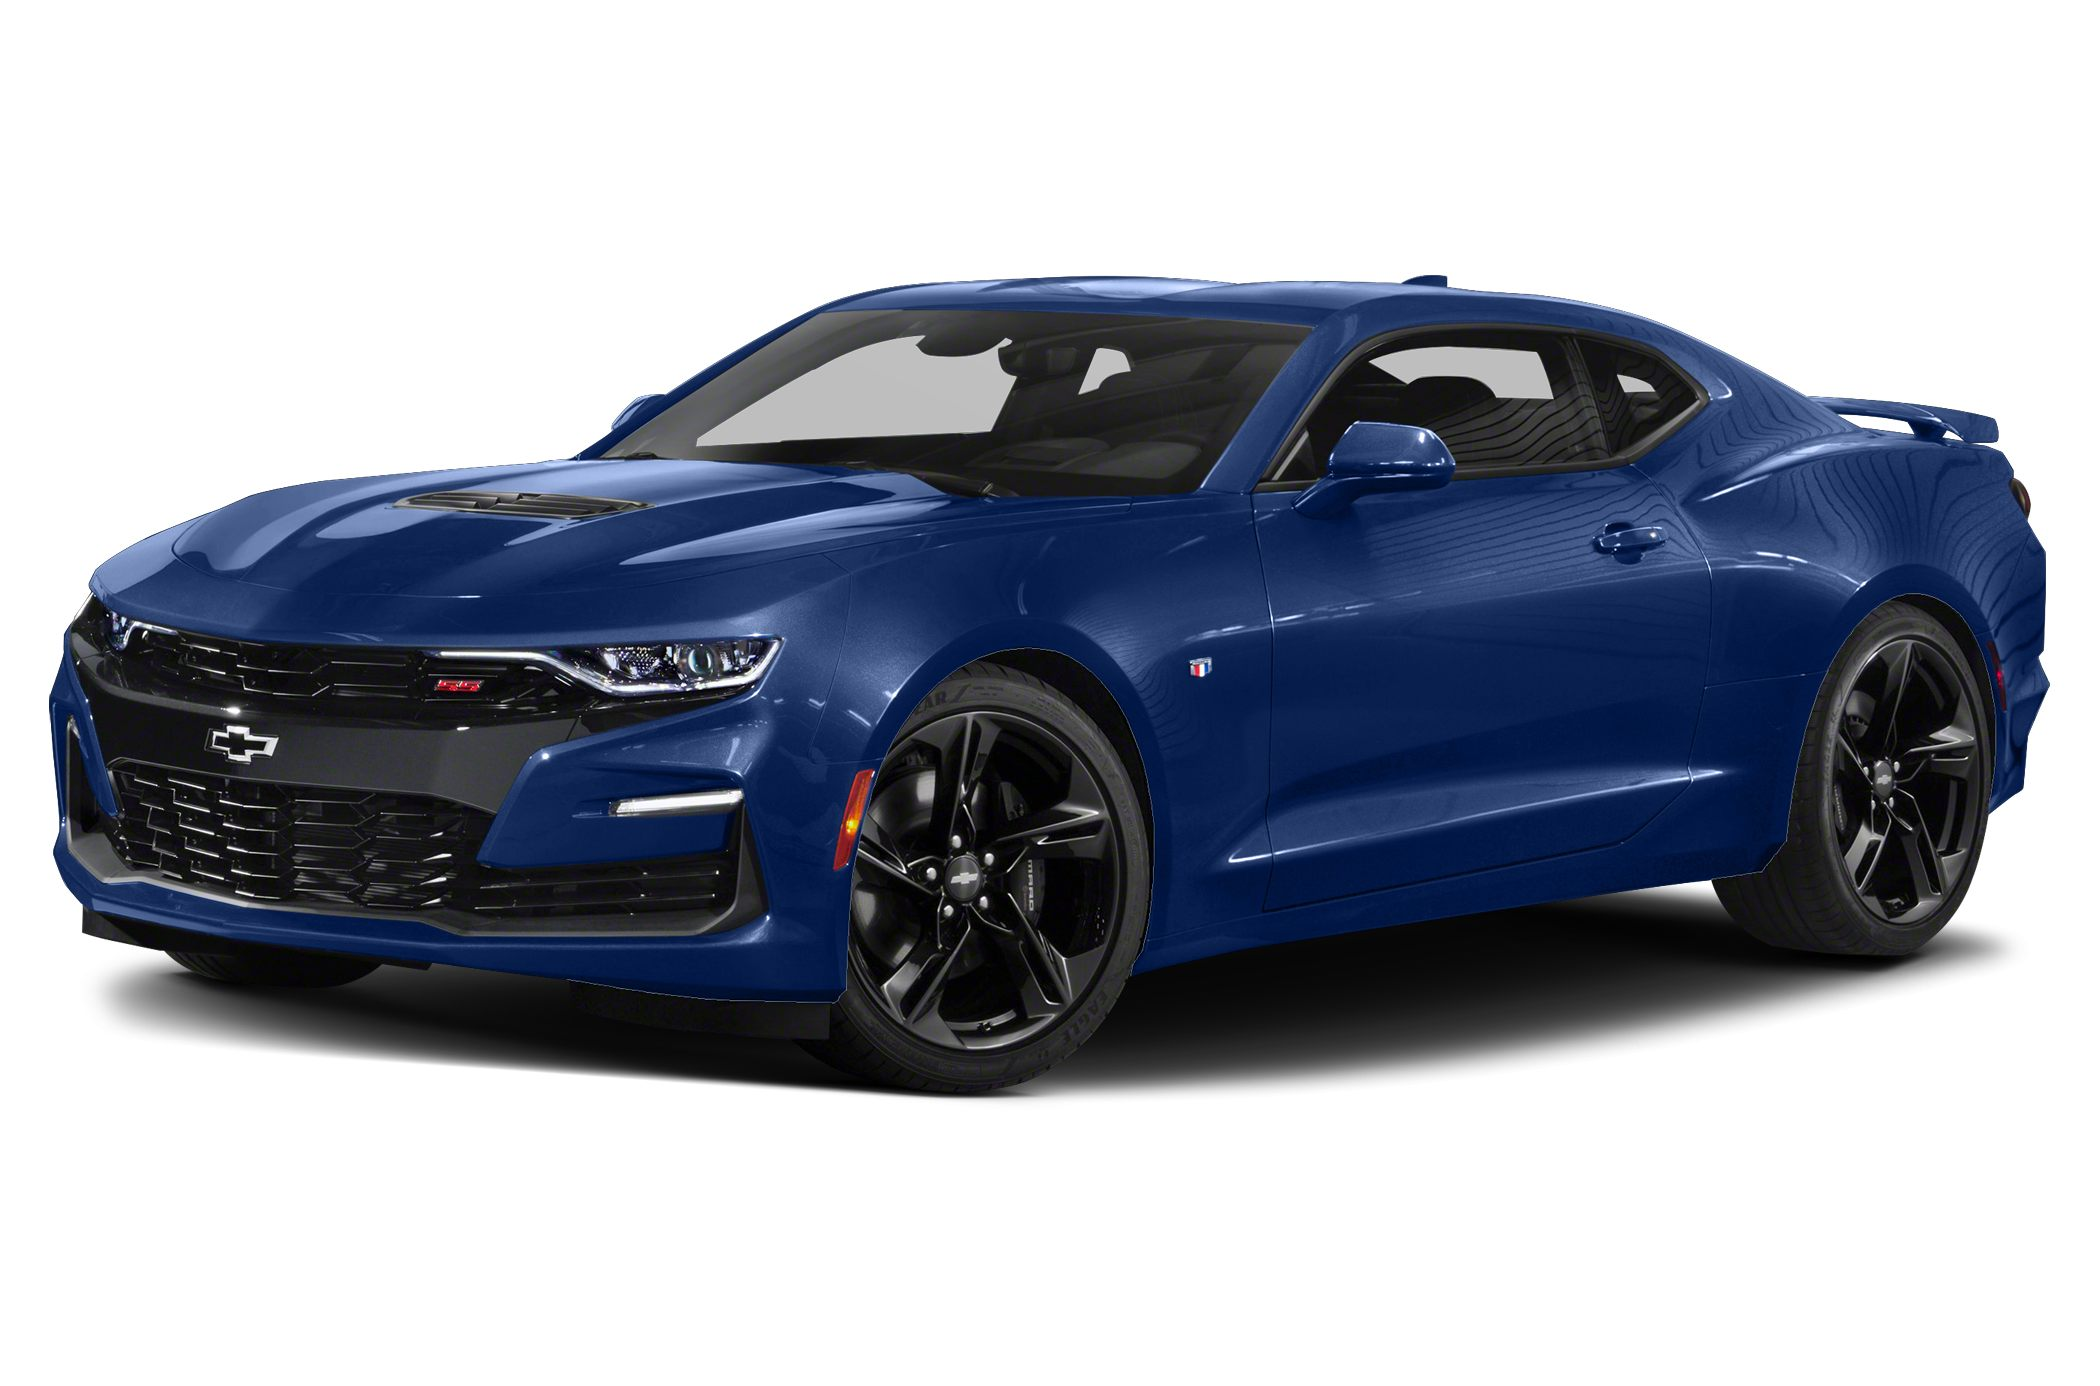 2014 Chevy Camaro revealed... on a daytime talk show?